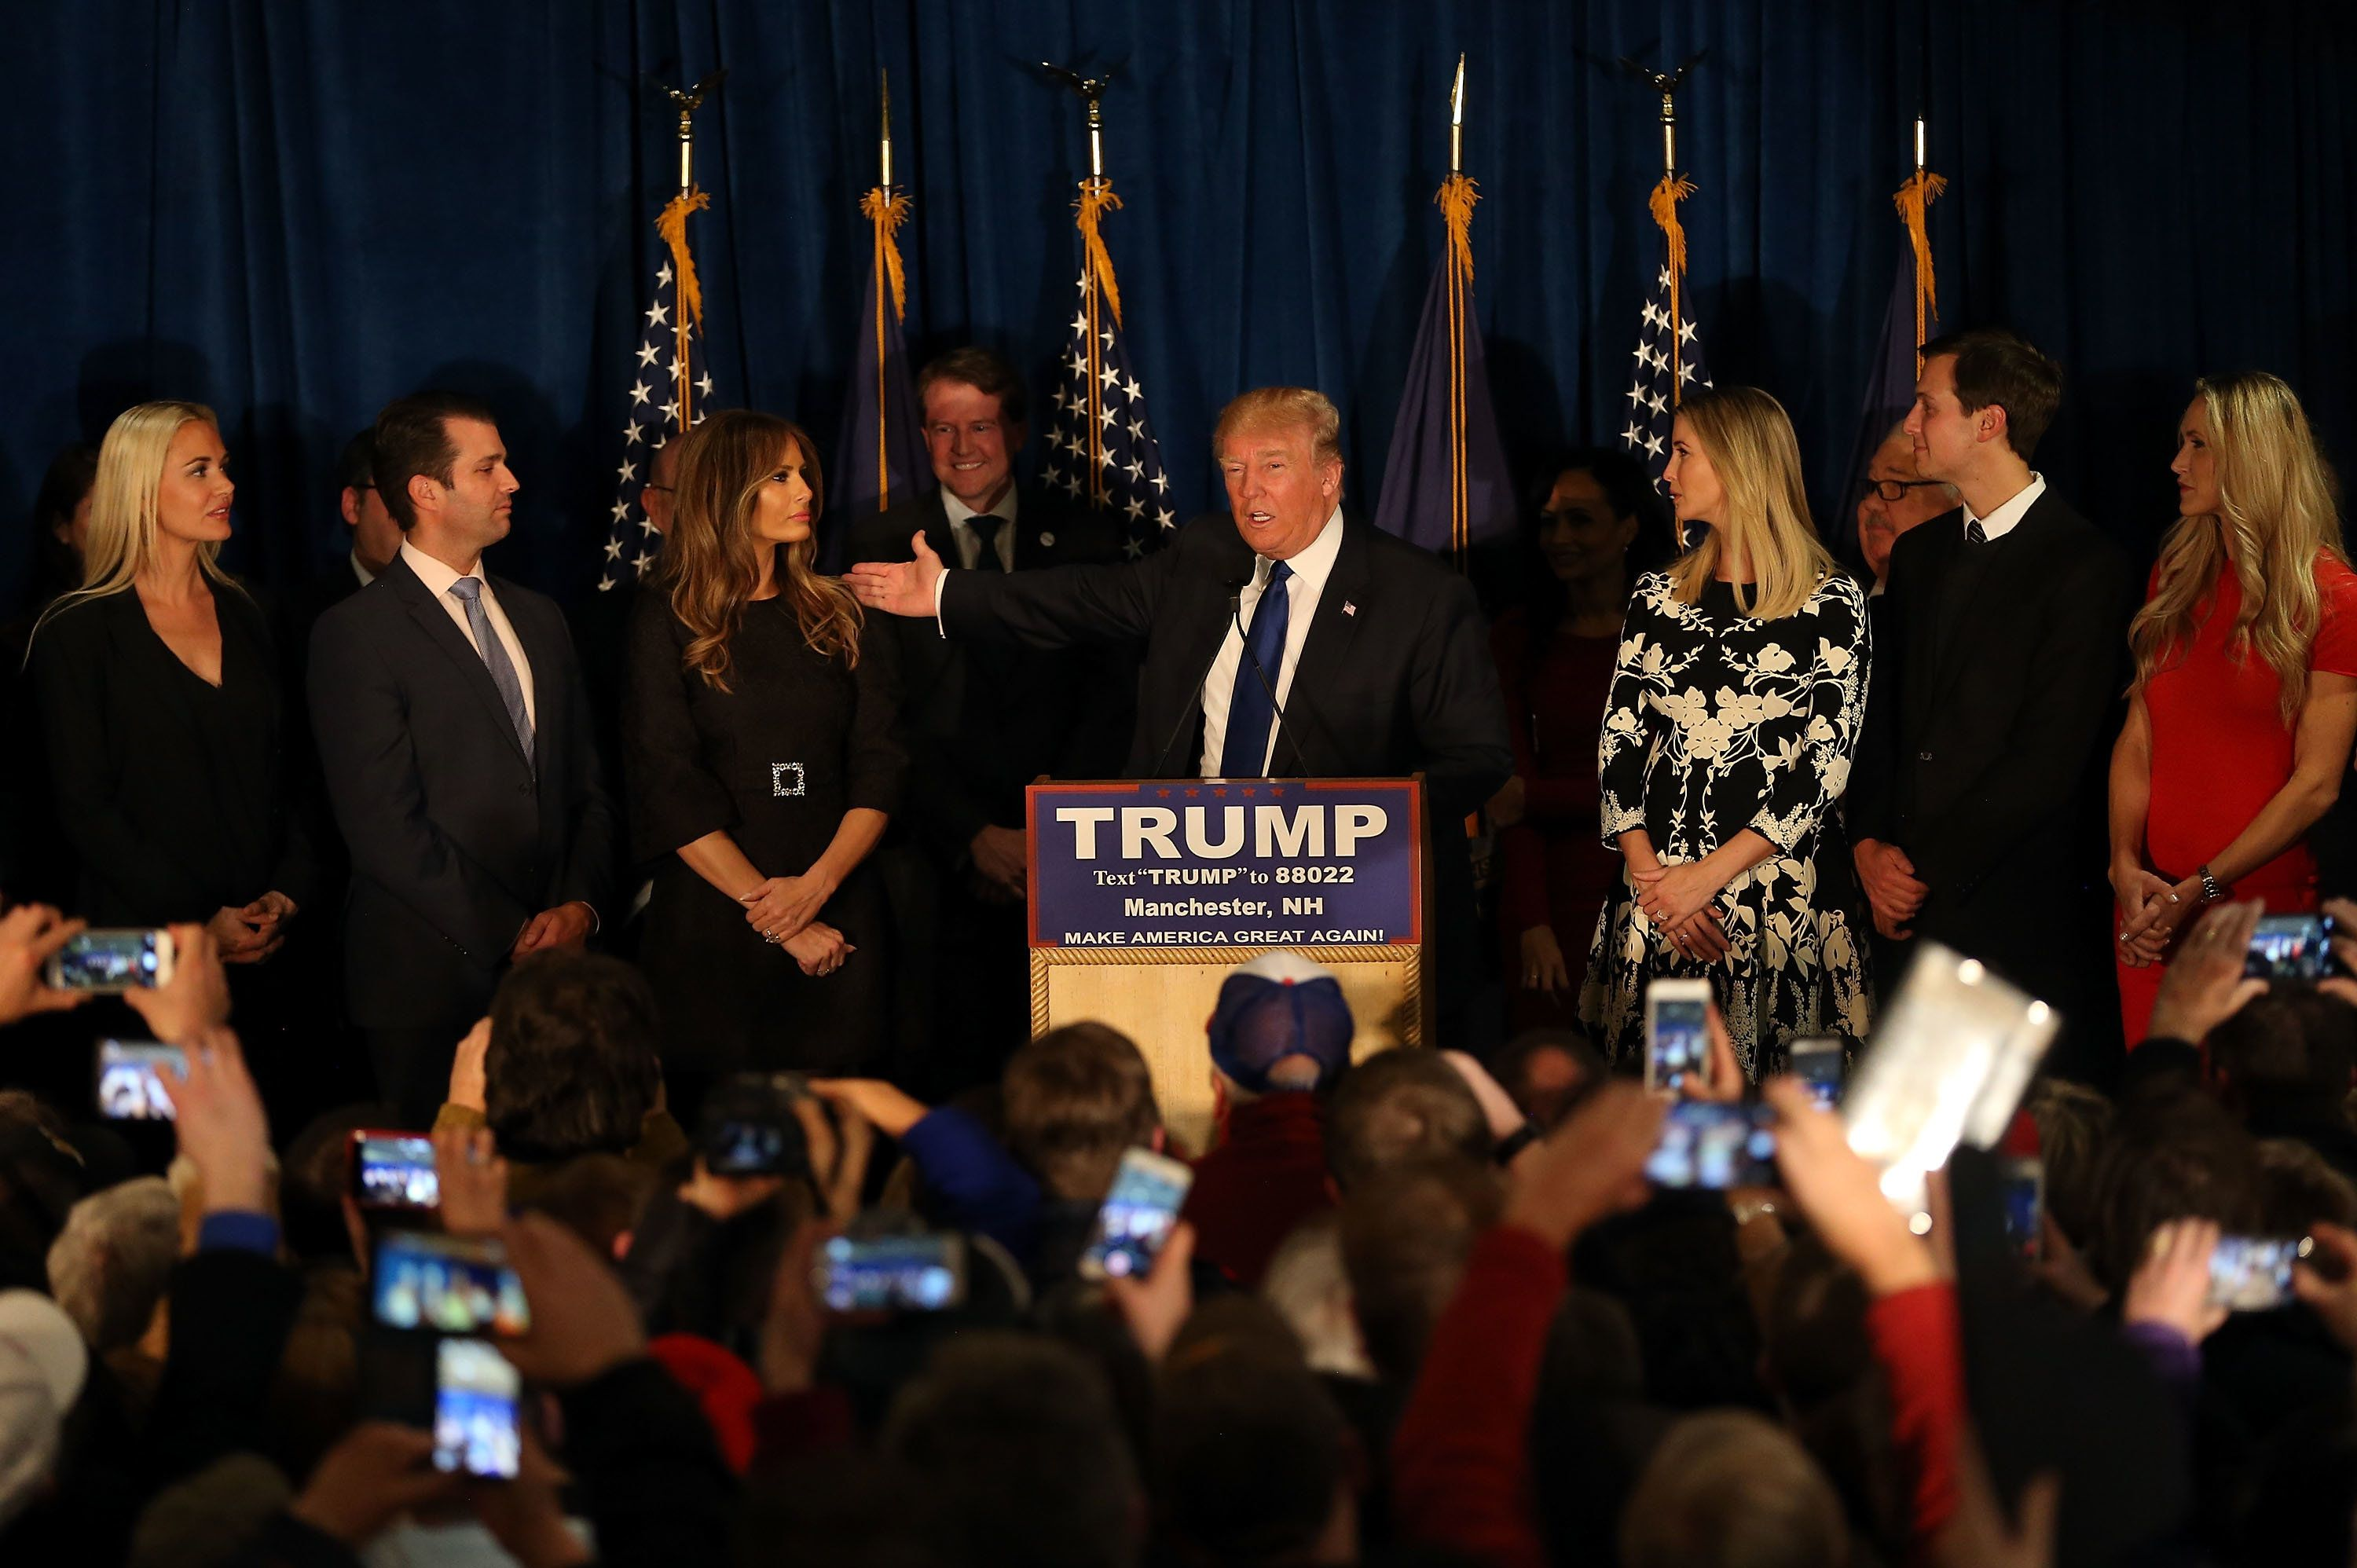 MANCHESTER, NH - FEBRUARY 09:  Republican presidential candidate Donald Trump speaks as his wife  Melania Trump and daughter Ivanka Trump look on after Primary day at his election night watch party at the Executive Court Banquet facility on February 9, 2016 in Manchester, New Hampshire. Trump was projected the Republican winner shortly after the polls closed.  (Photo by Joe Raedle/Getty Images)